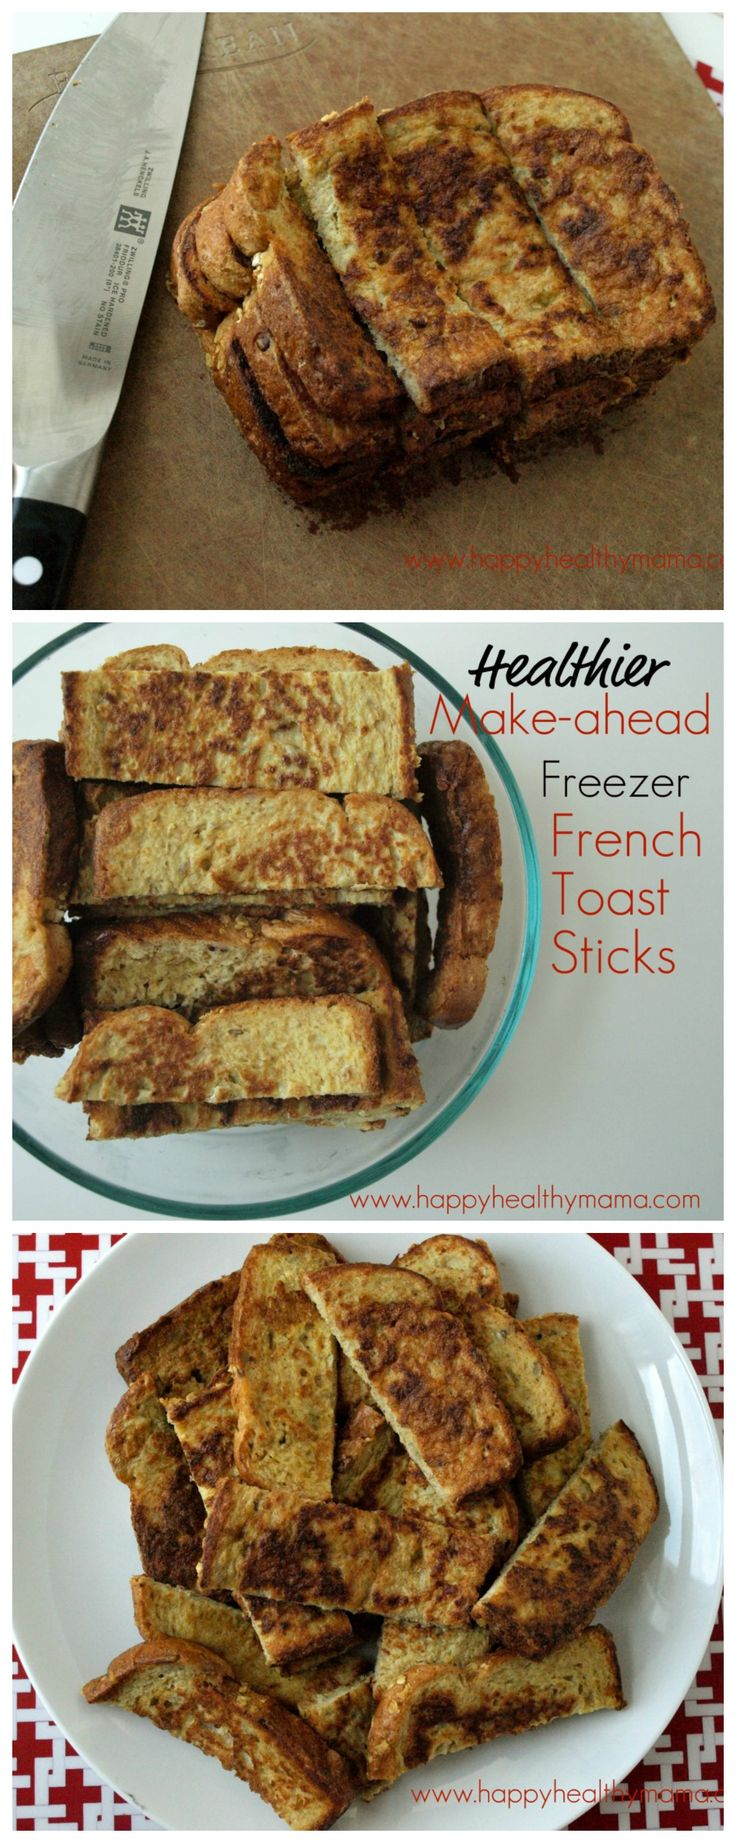 Skip the freezer section at the grocery store and make your own healthier French Toast Sticks . Your mornings will be quick and easy and your kids will LOVE breakfast!